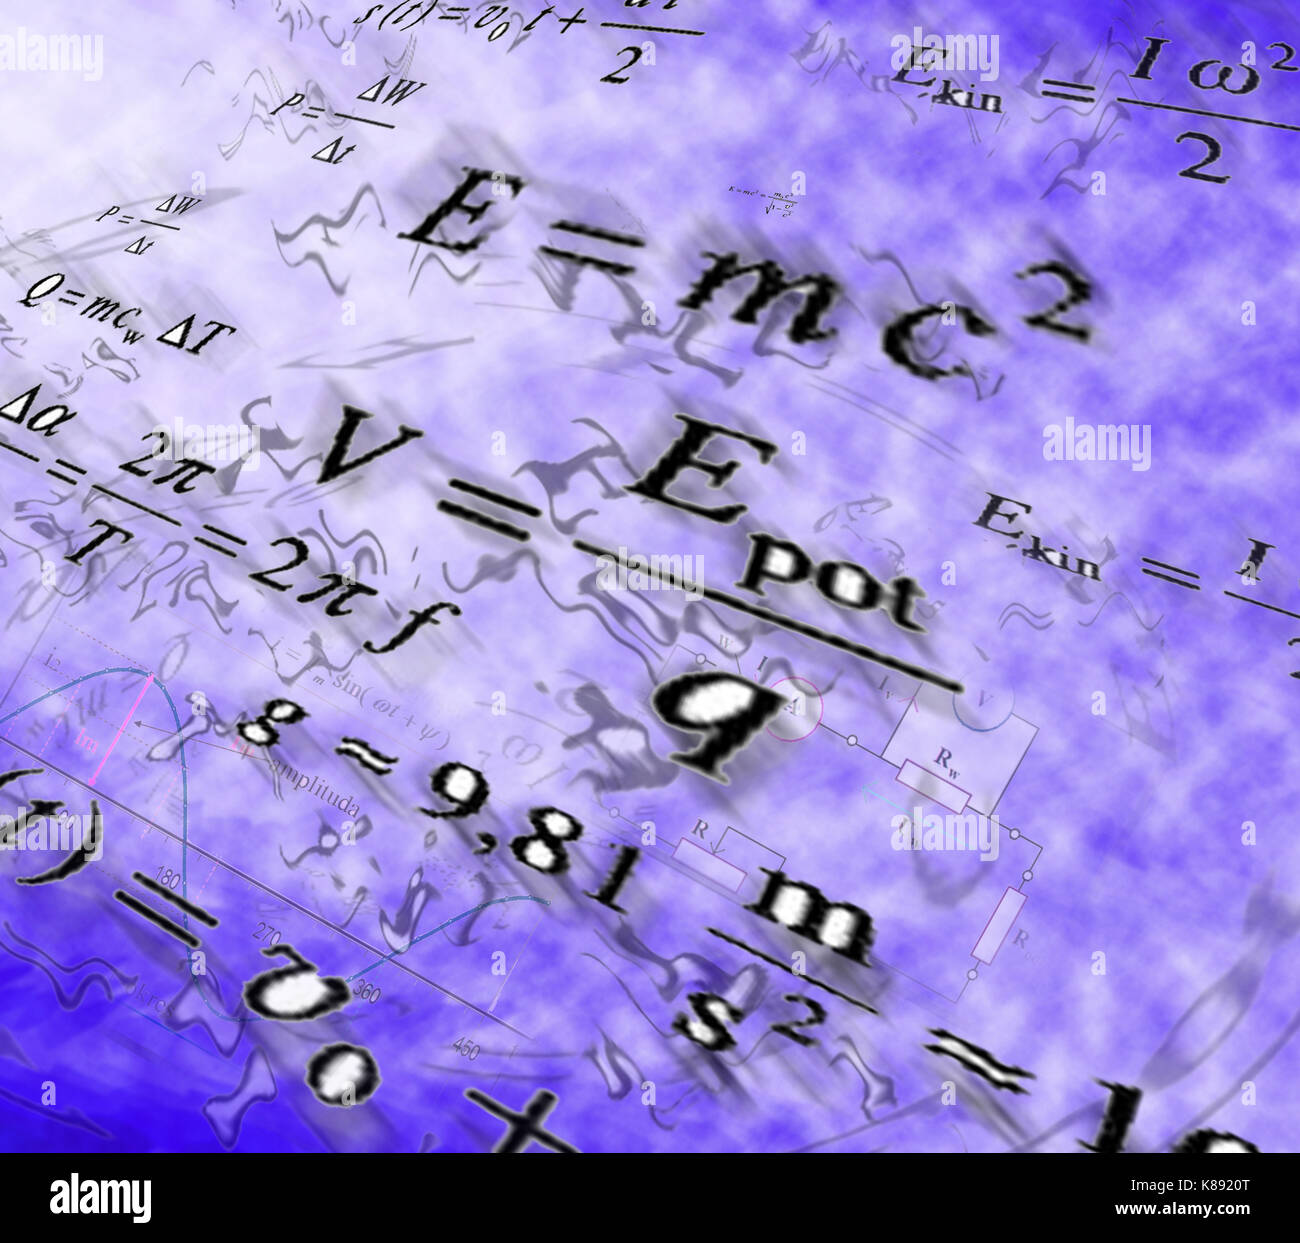 physical science wallpapers: Physics Equation Stock Photos & Physics Equation Stock